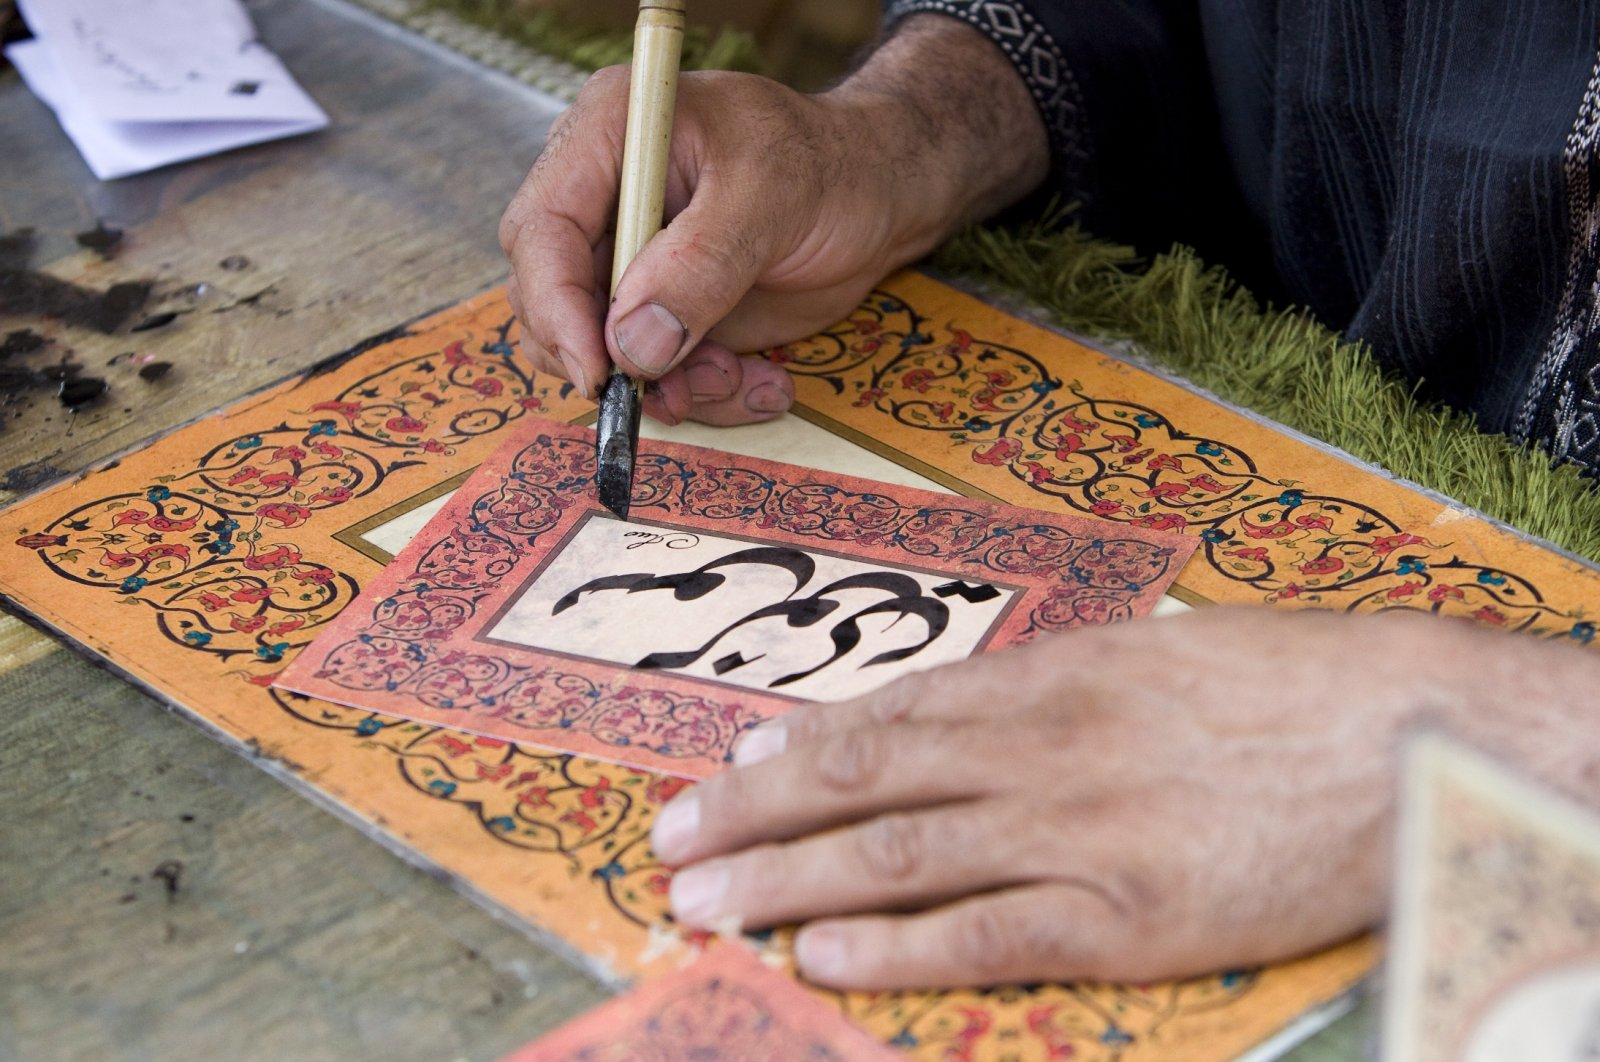 A man writes down a name in traditional Arabic characters in calligraphy. (Shutterstock Photo)